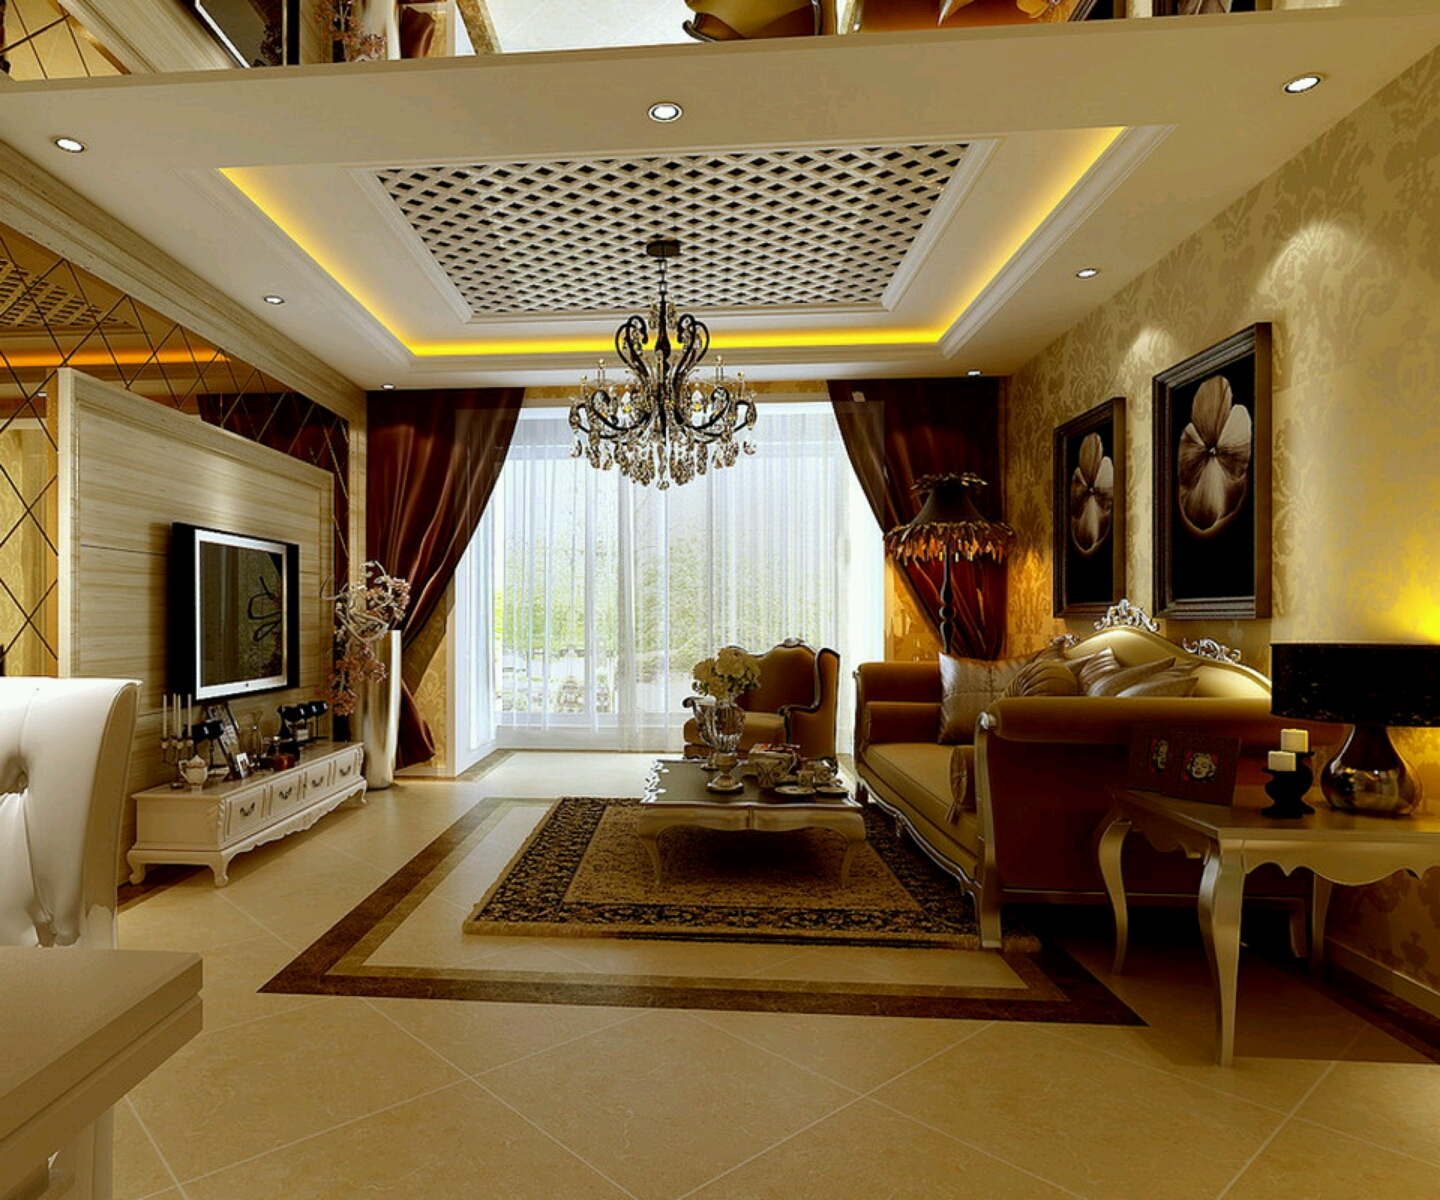 New home designs latest luxury homes interior decoration Living room interior design photo gallery